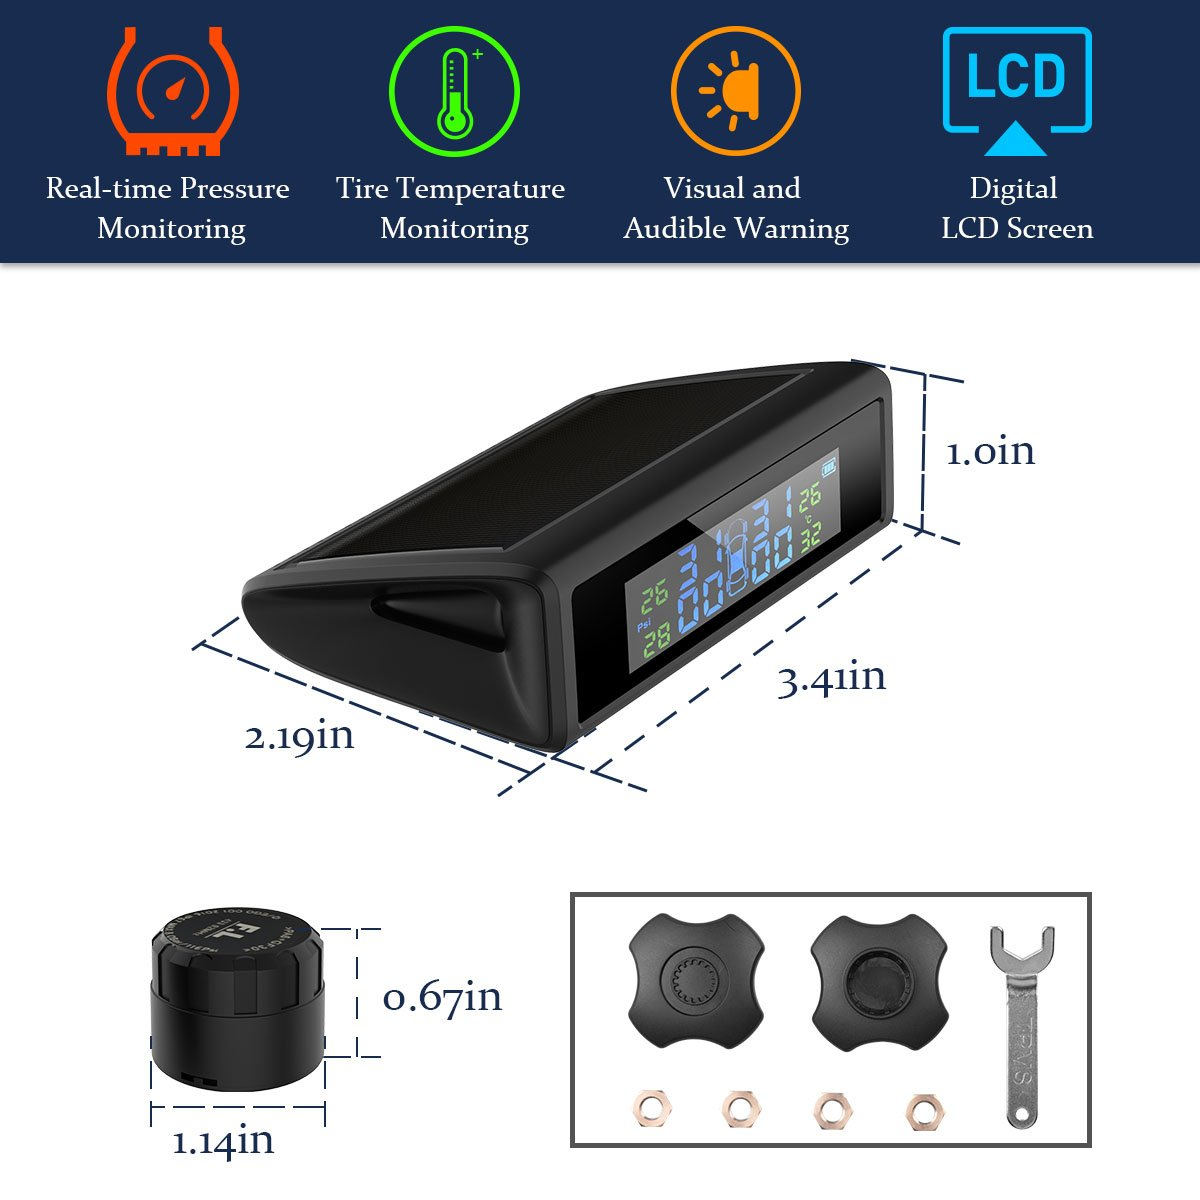 HiGoing Tire Pressure Monitoring System, Solar Wireless TPMS Built-in 450mAh Battery, 4 External Sensors (0-8.0 Bar/0-116 Psi, 49-85℉/65-85℃), 6 Alarms Real-time High Monitor Temperature & Pressure by HiGoing (Image #4)